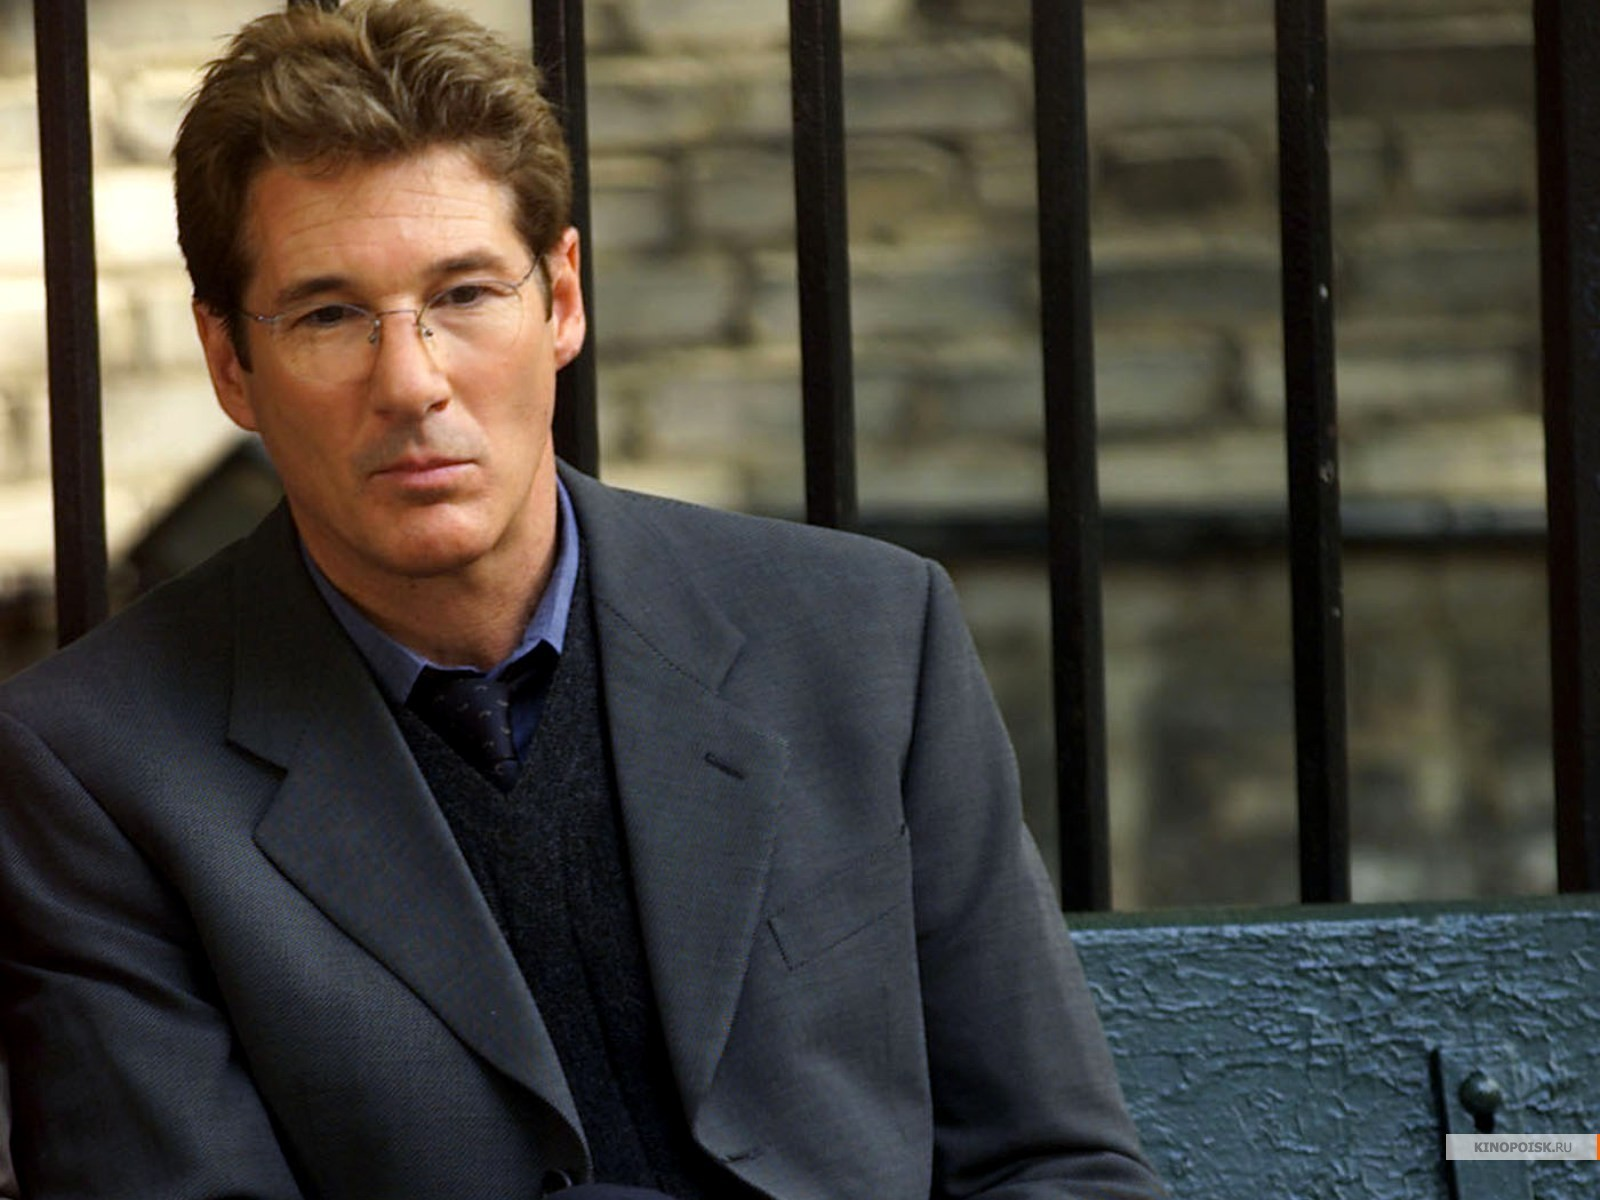 Richard Gere: Richard Gere Pretty Woman Quotes. QuotesGram